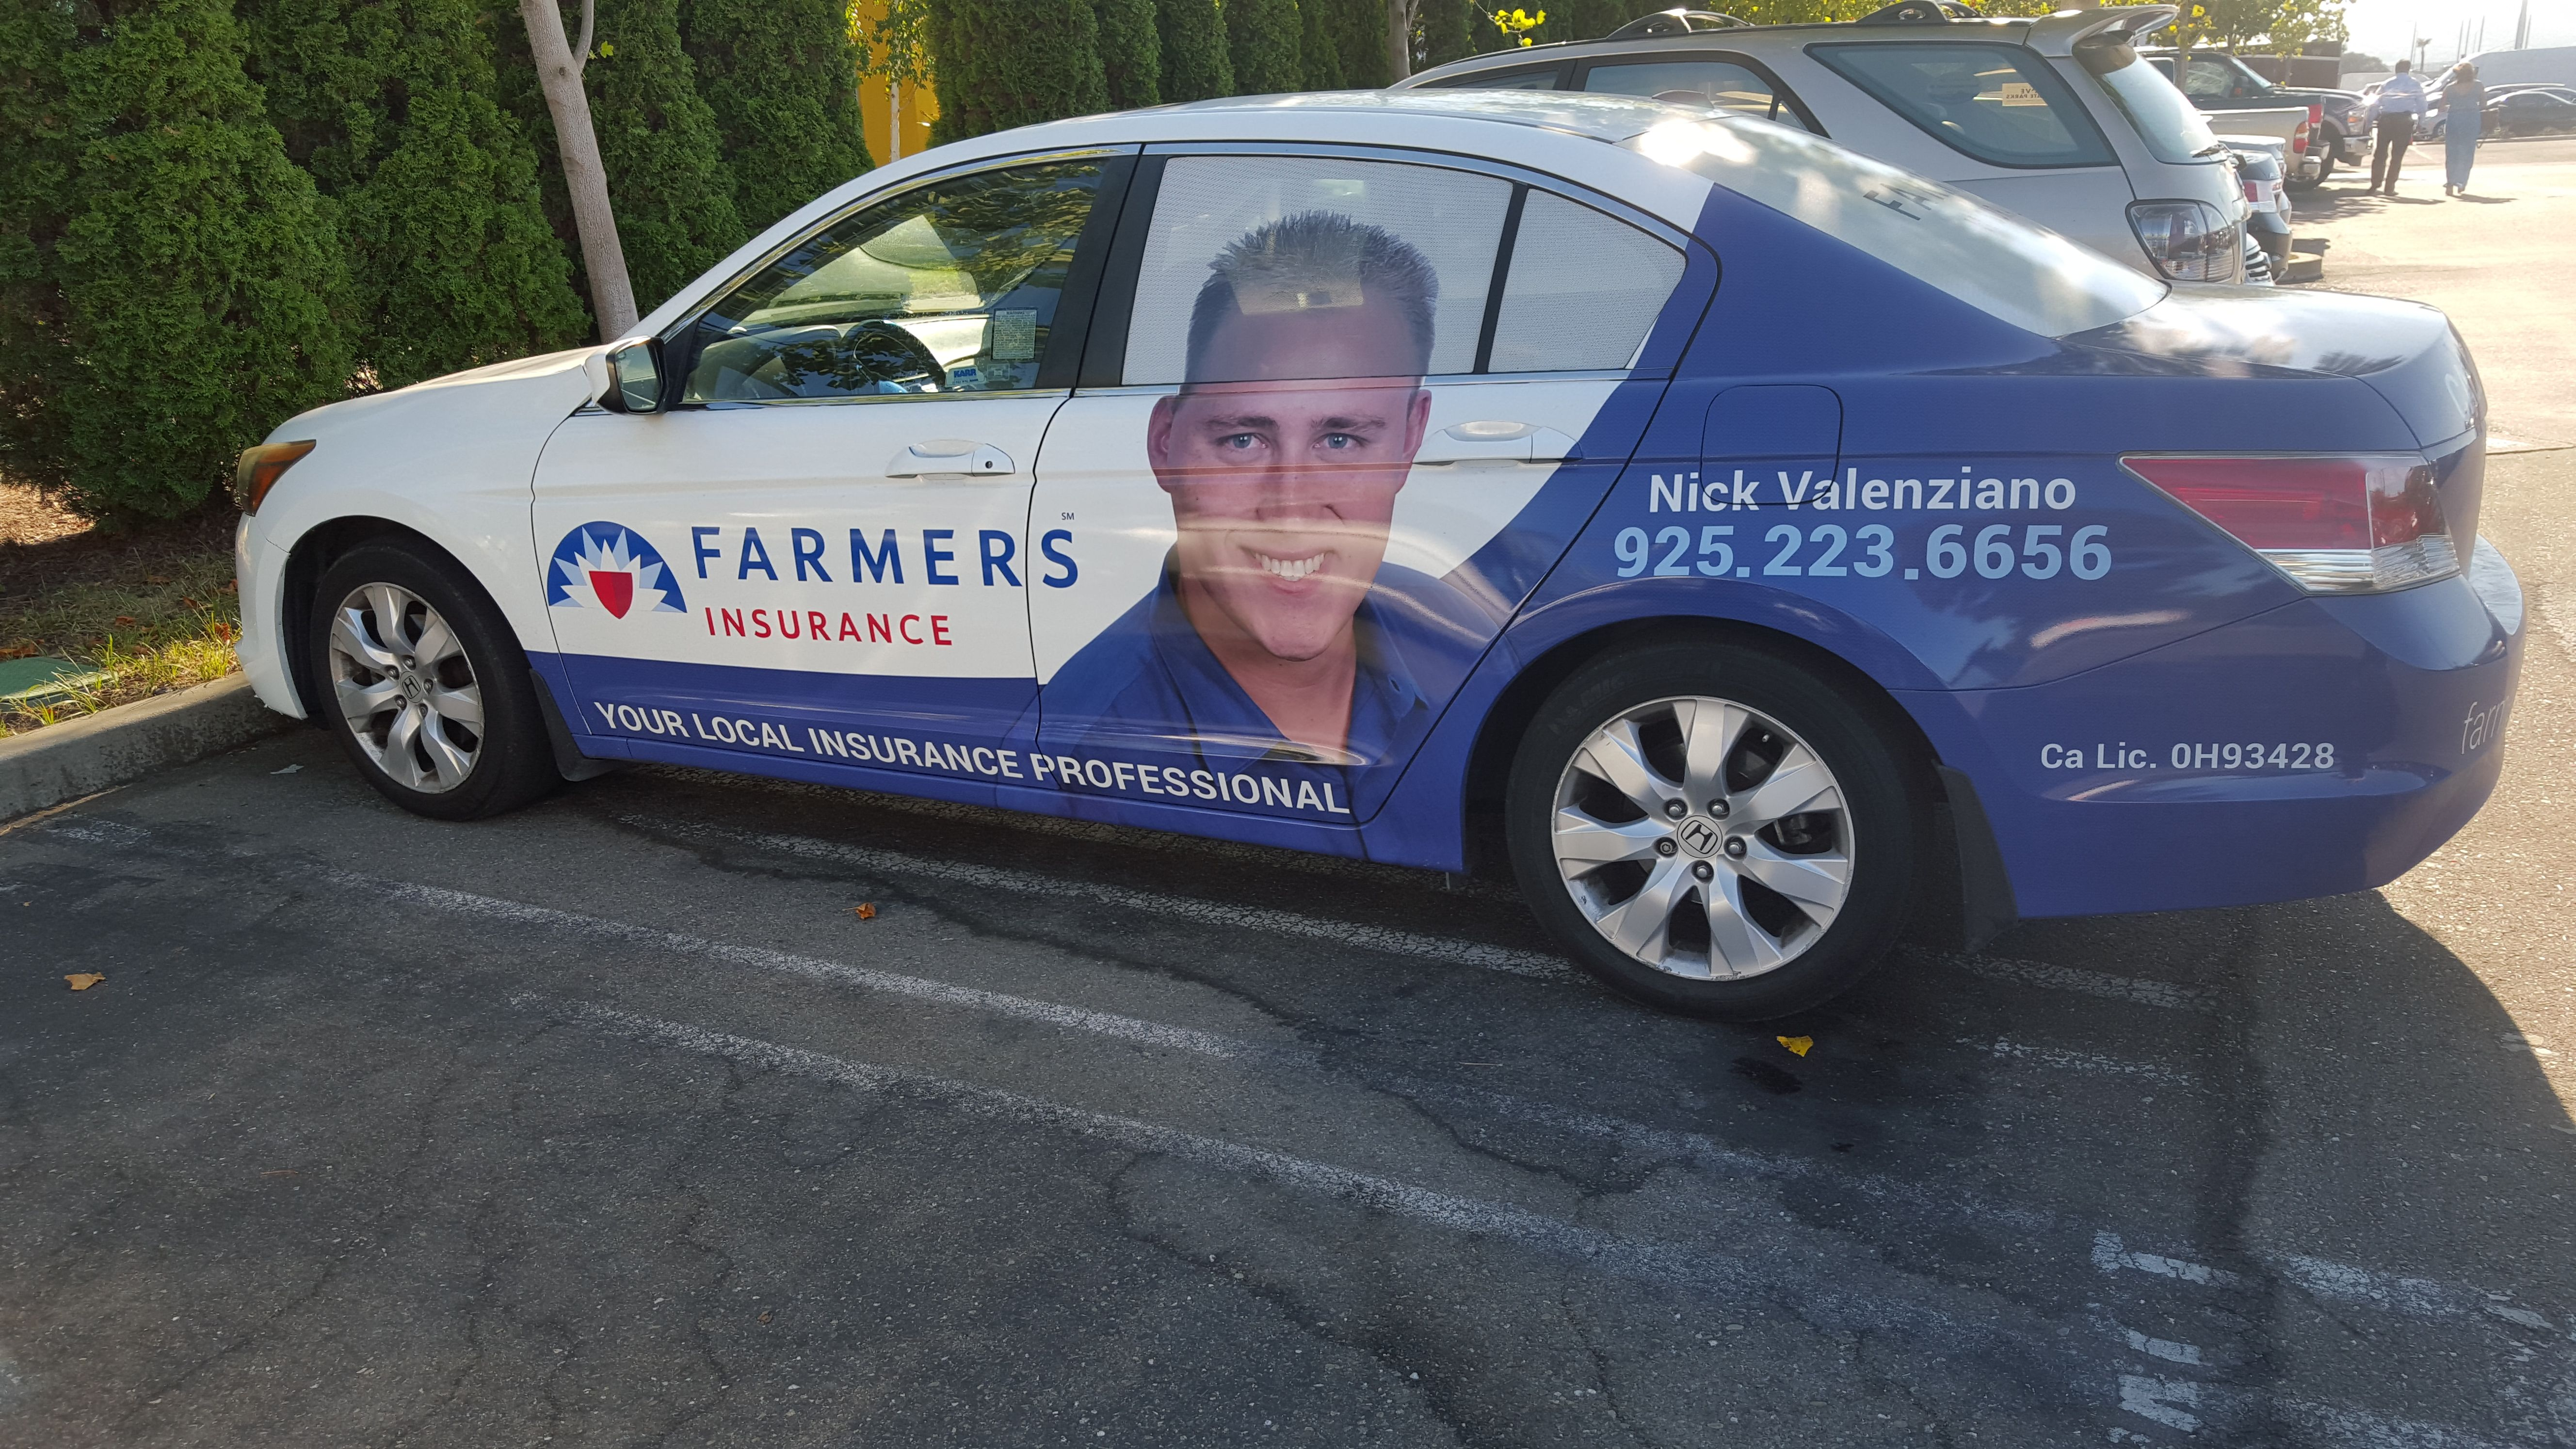 Farmers Insurance Agent Vehicle Wrap Insignia Designs Works With Your Branding Car Graphics Car Wrap Vehicles